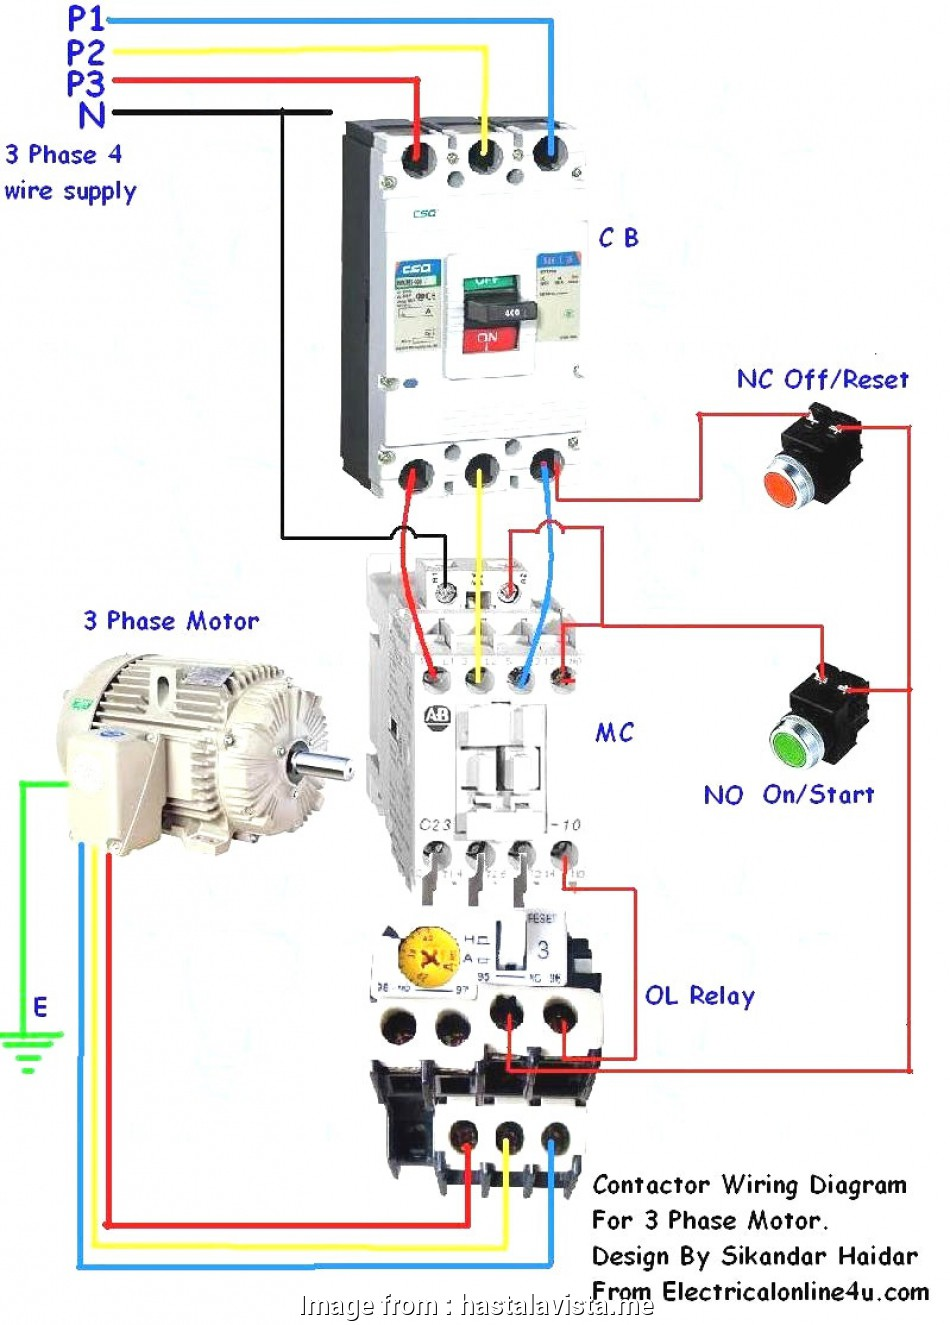 Direct Online Starter Wiring Diagram Brilliant     Pole Contactor Wiring Diagram Square Lighting